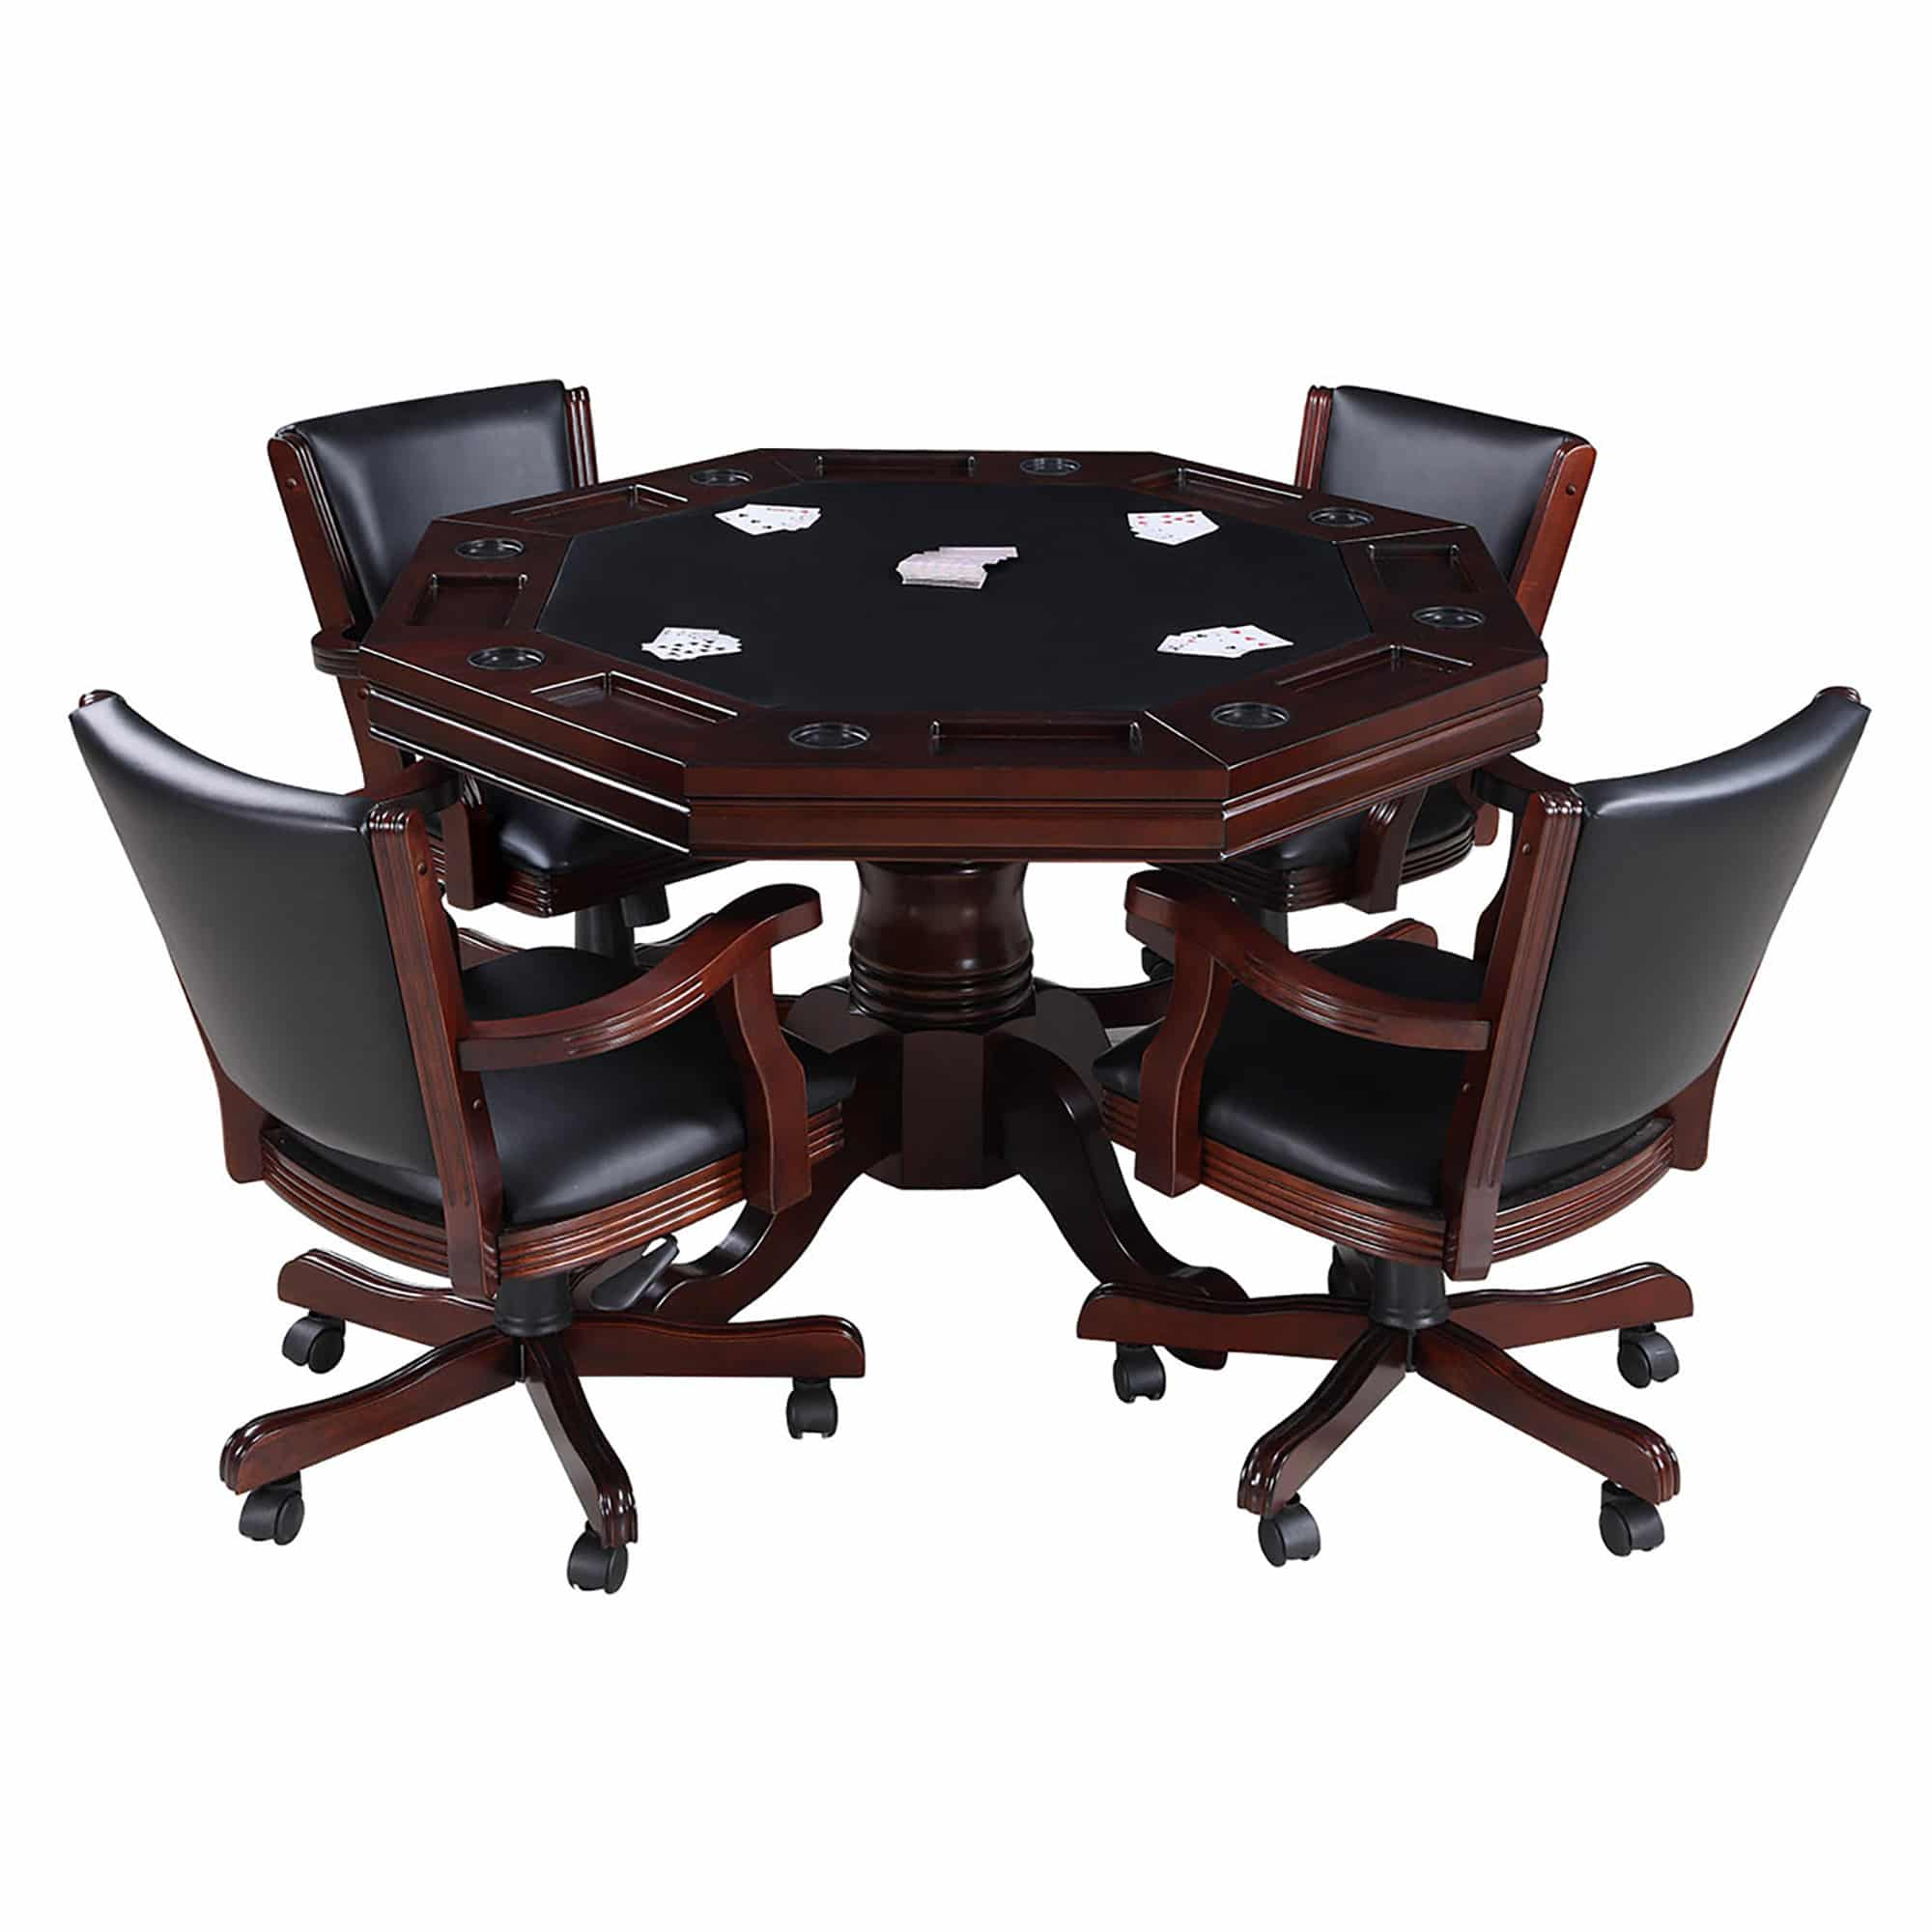 Kingston Walnut 3 In 1 Poker Table And 4 Arm Chairs